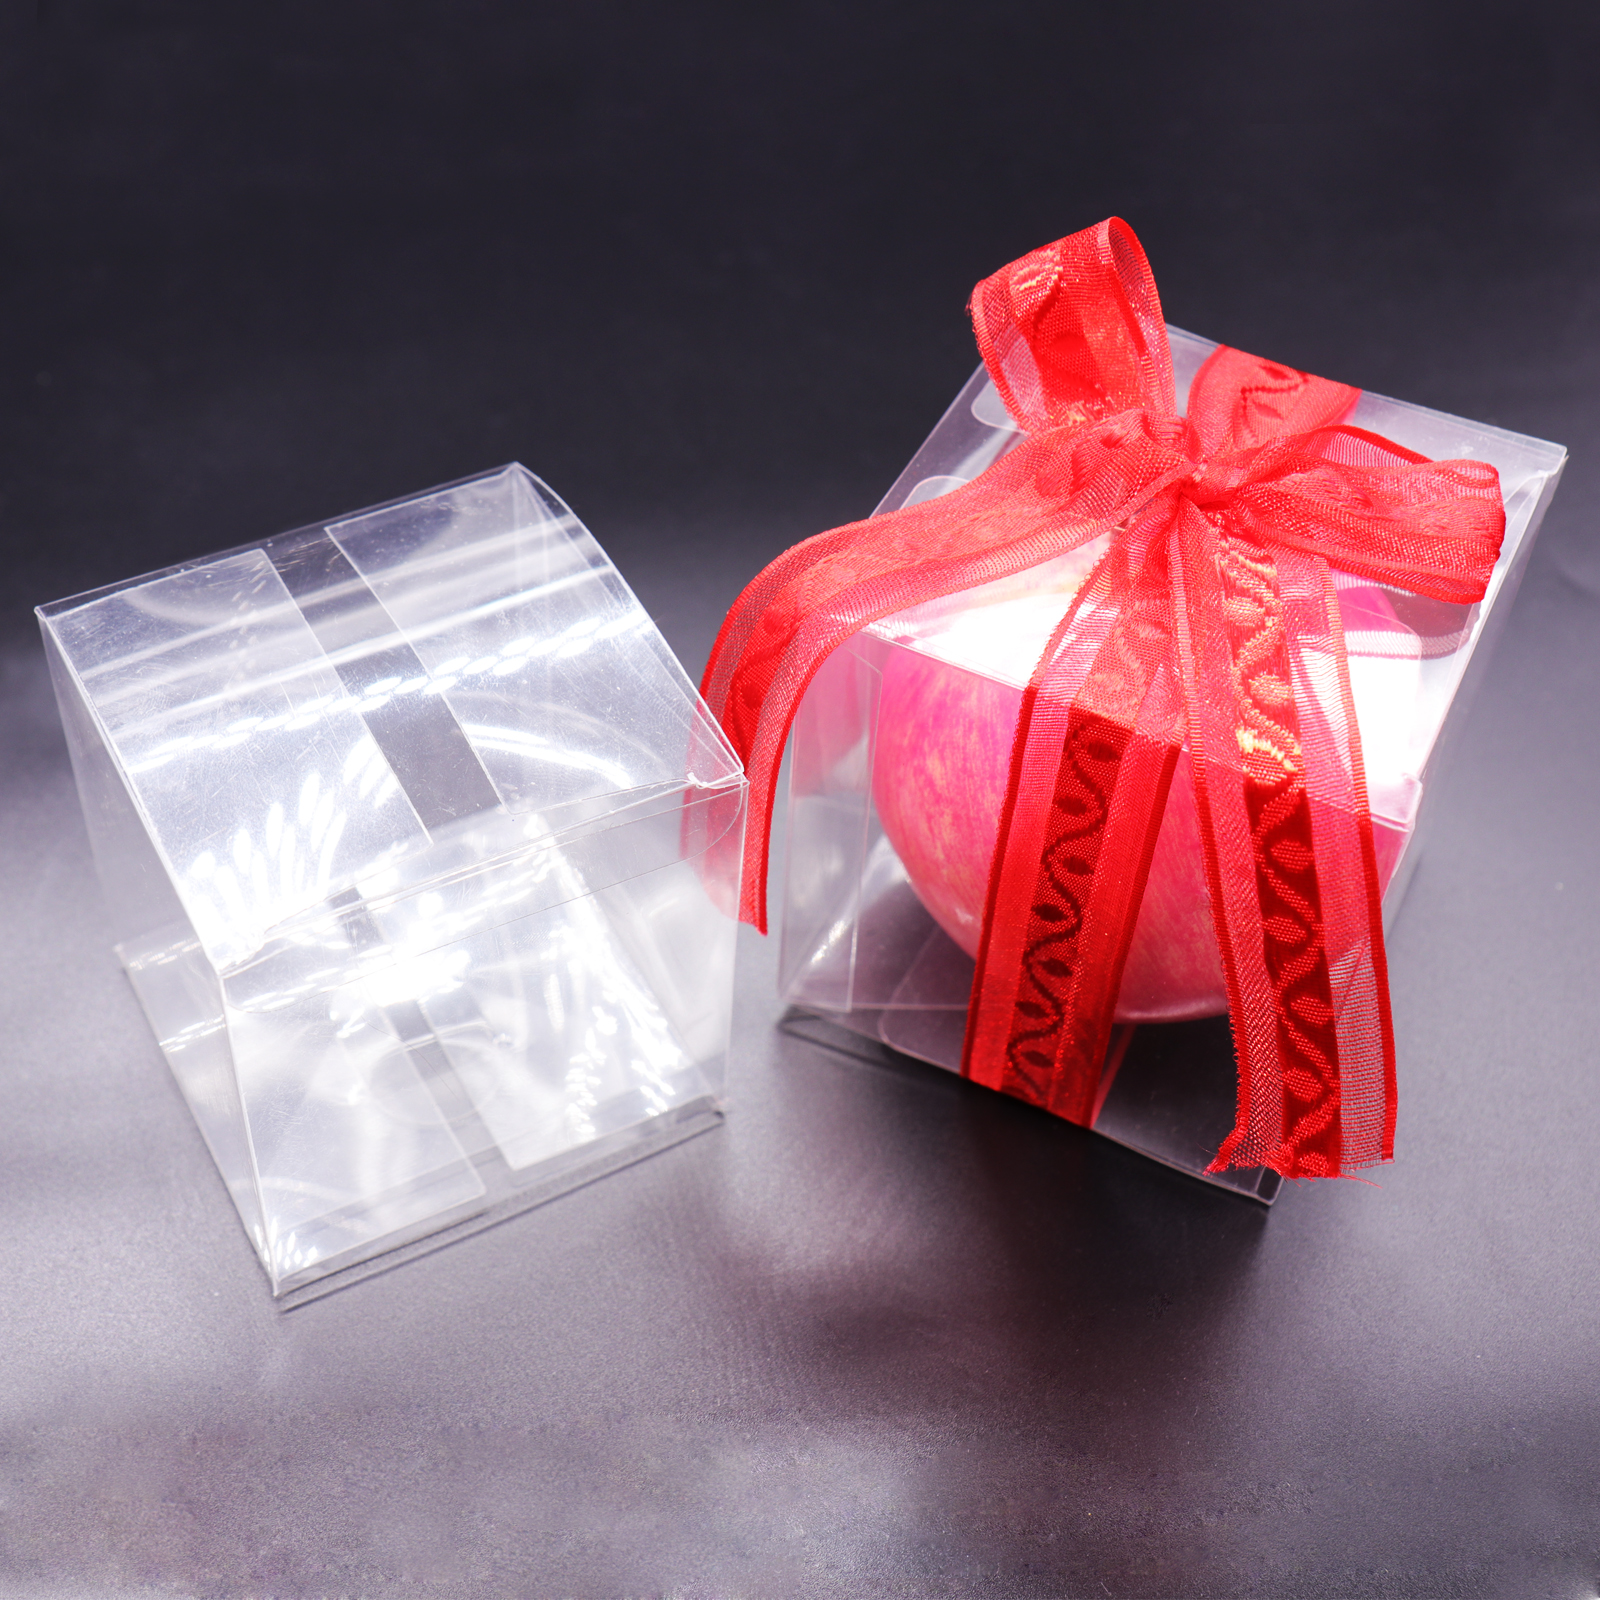 15 RED PARTY FAVOR TREAT BOXES BAG GREAT FOR BIRTHDAYS WEDDING BABY SHOWER